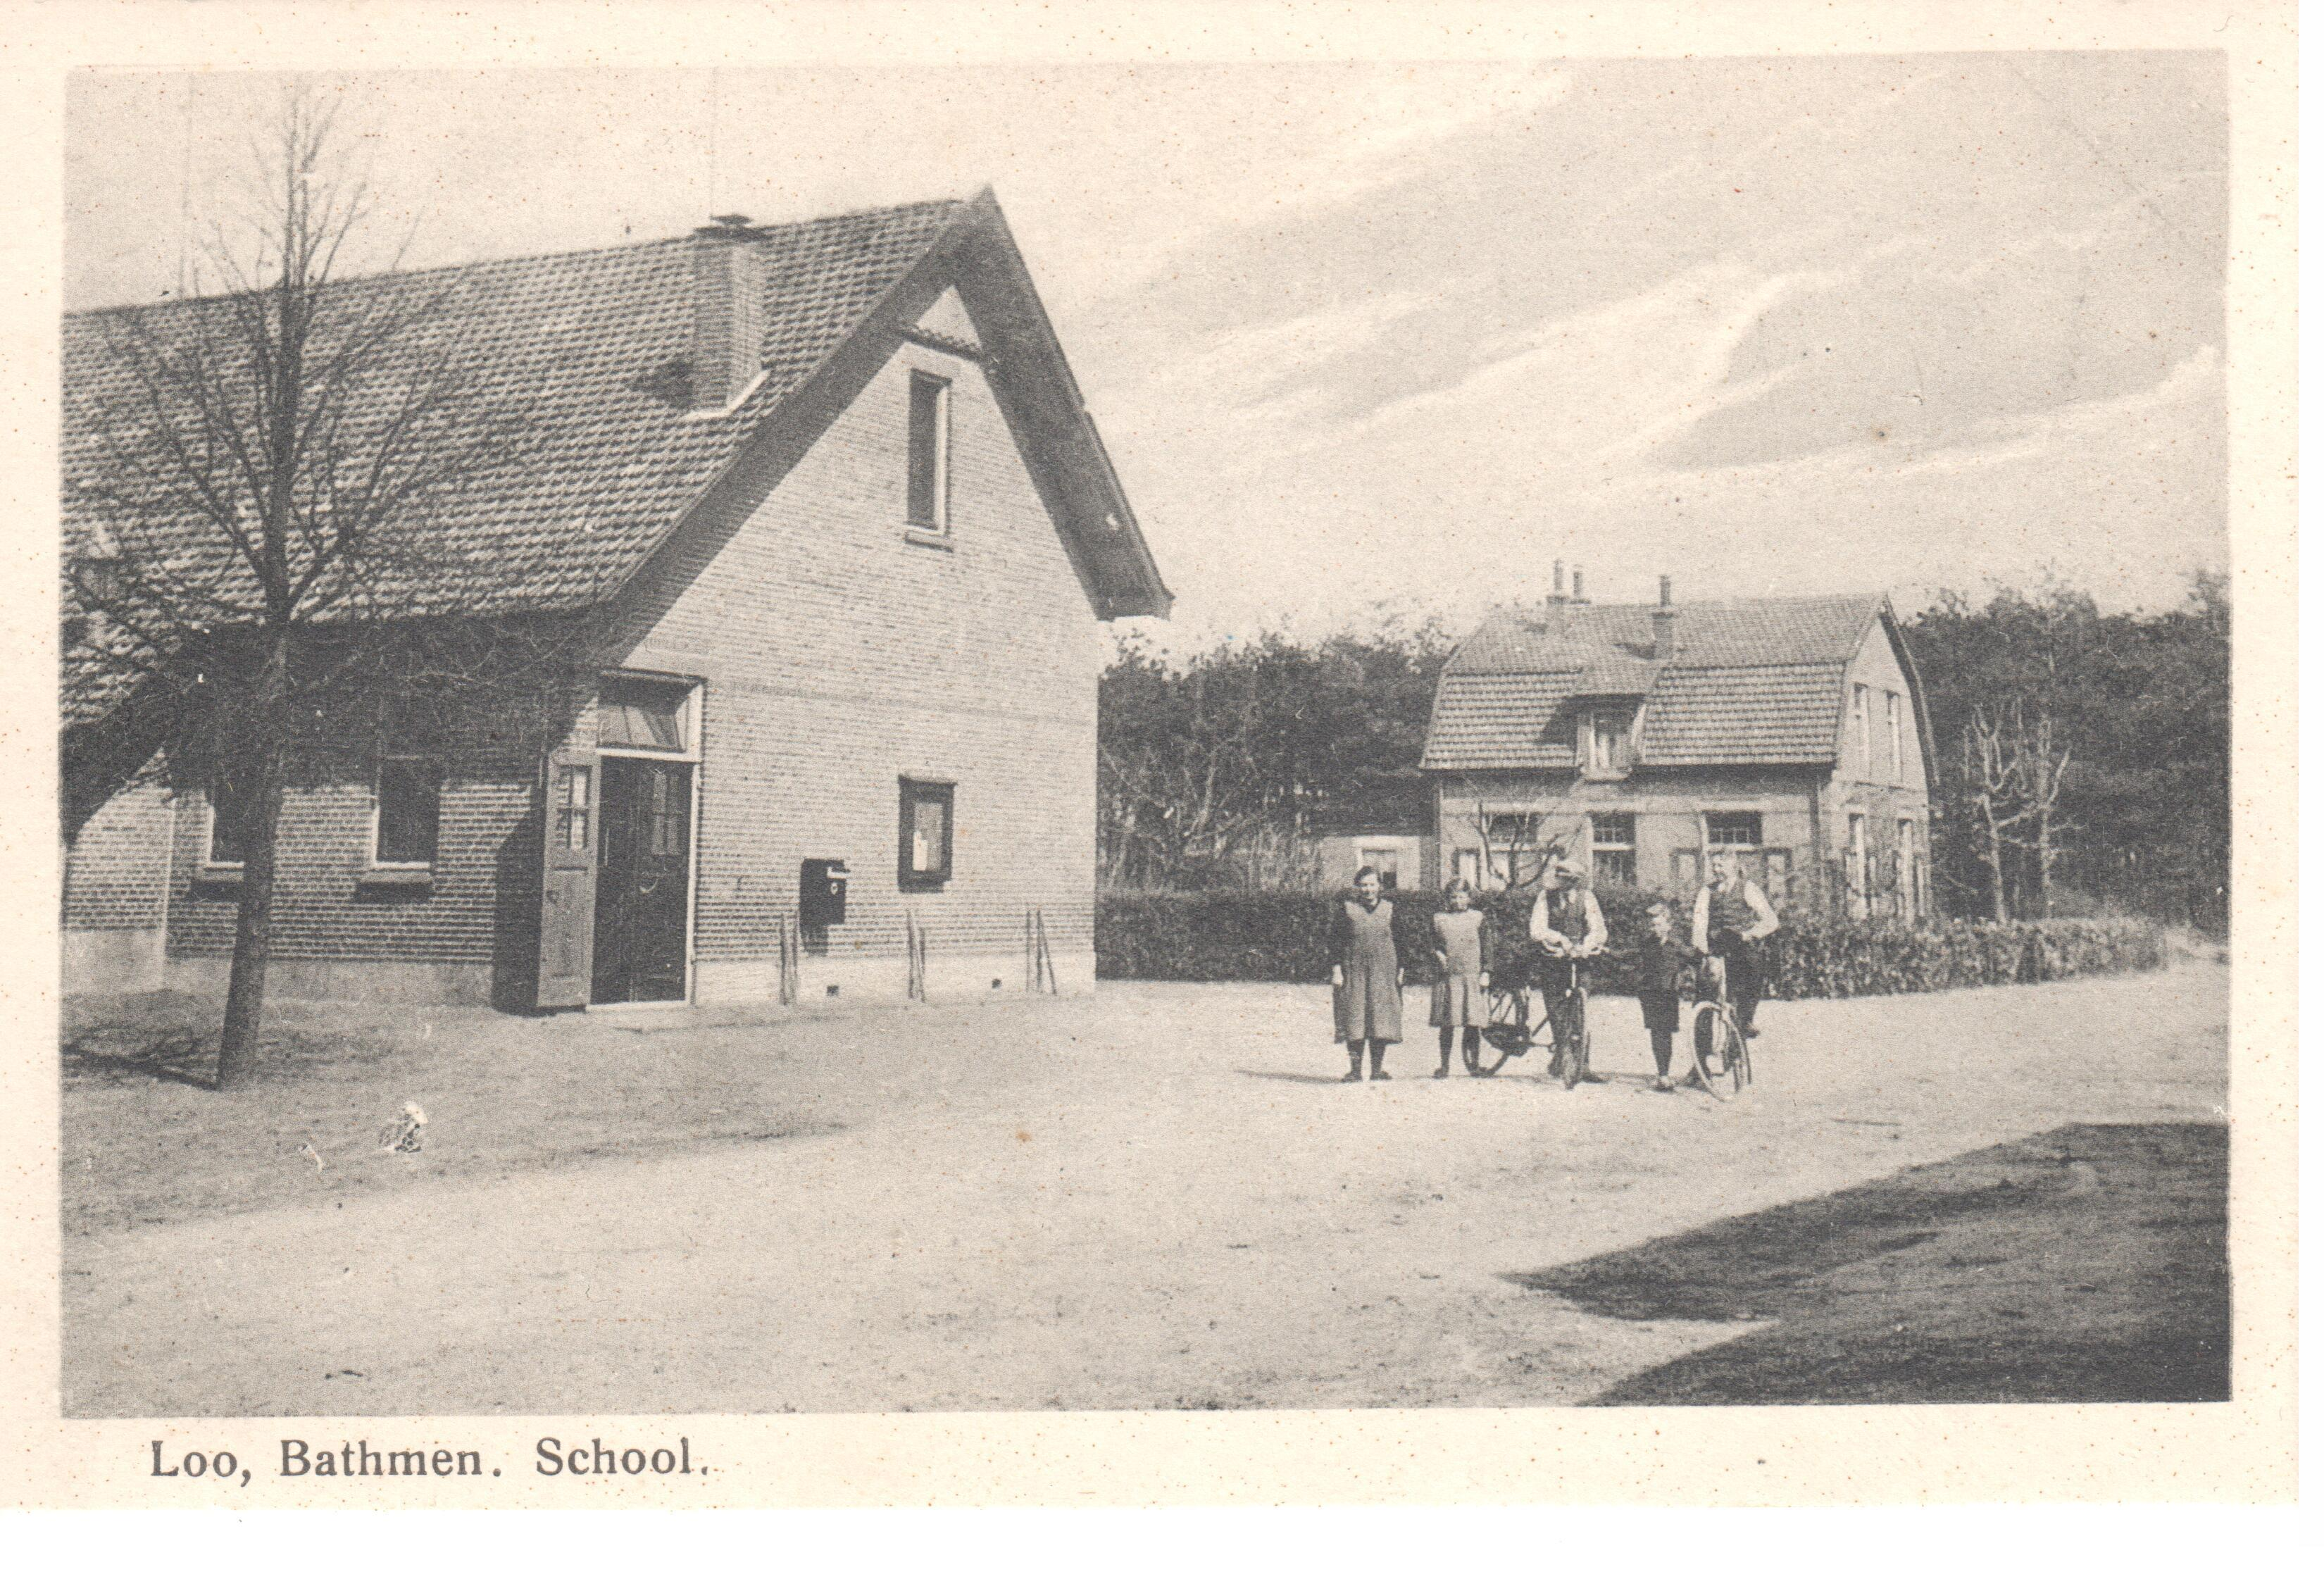 Looschool, Bathmen 1915